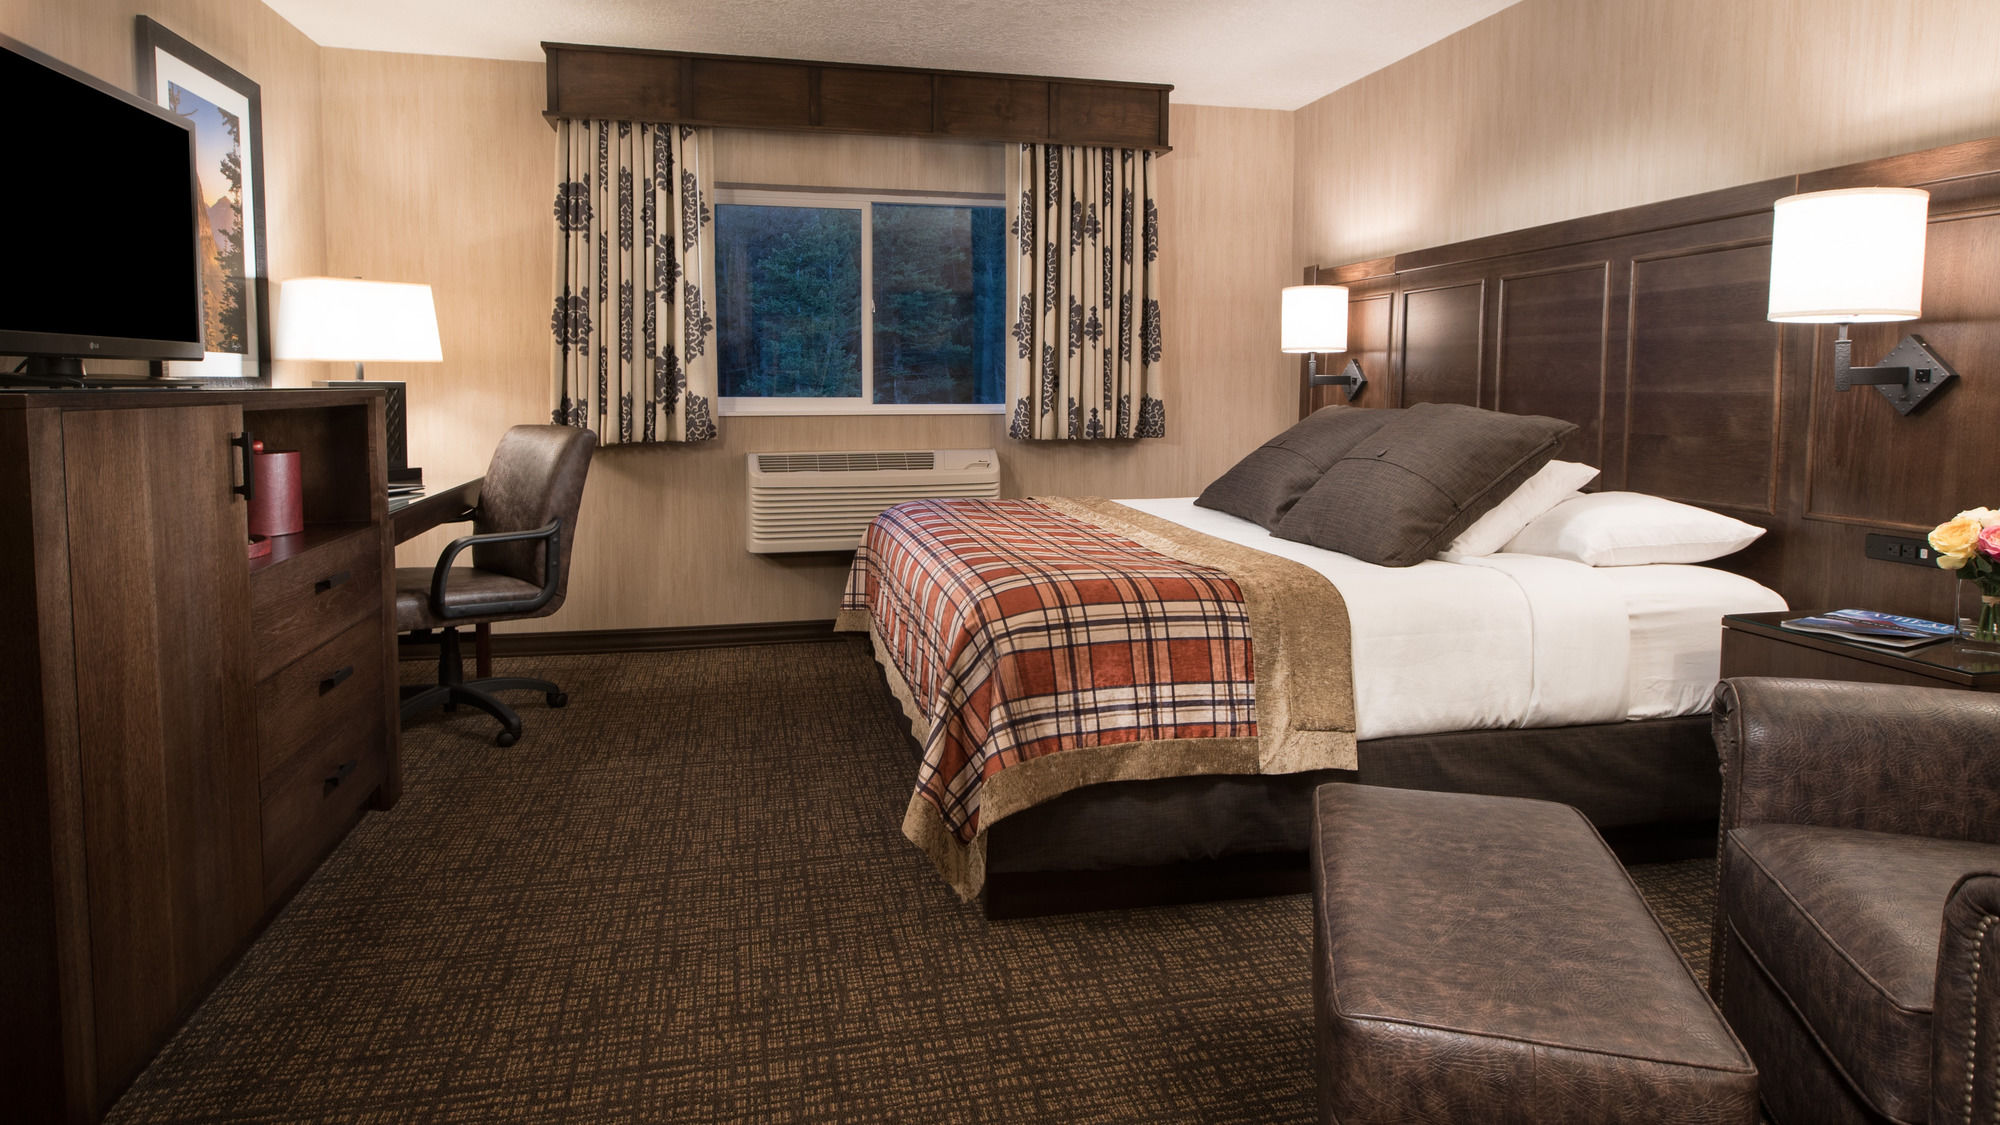 Kalispell Hotel Coupons for Kalispell, Montana - FreeHotelCoupons.com